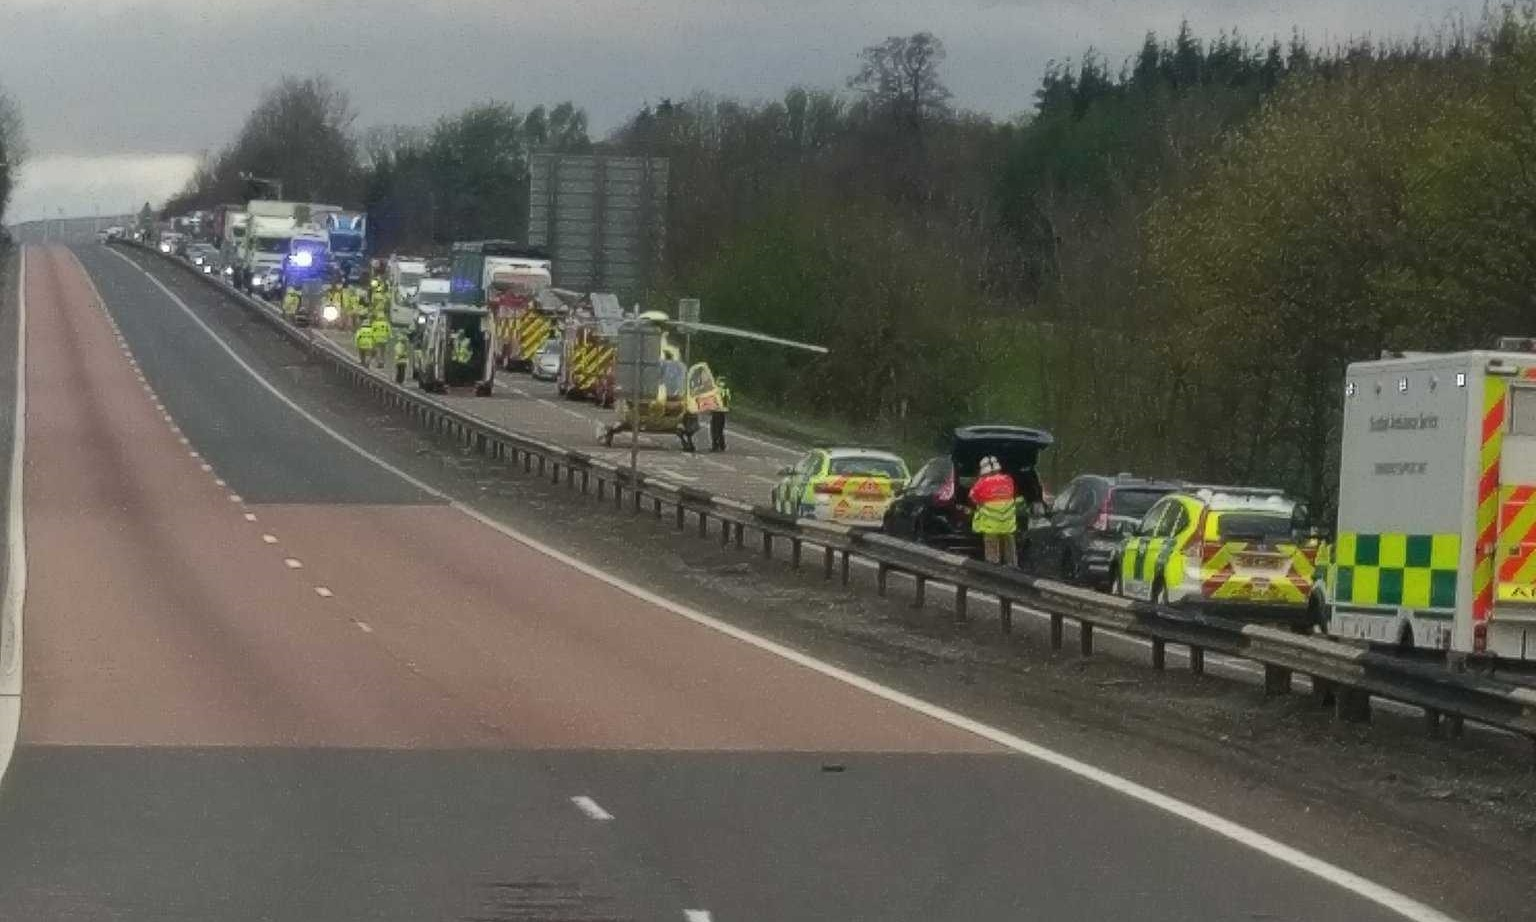 The air ambulance landed on the road to airlift at least one of the casualties to hospital.